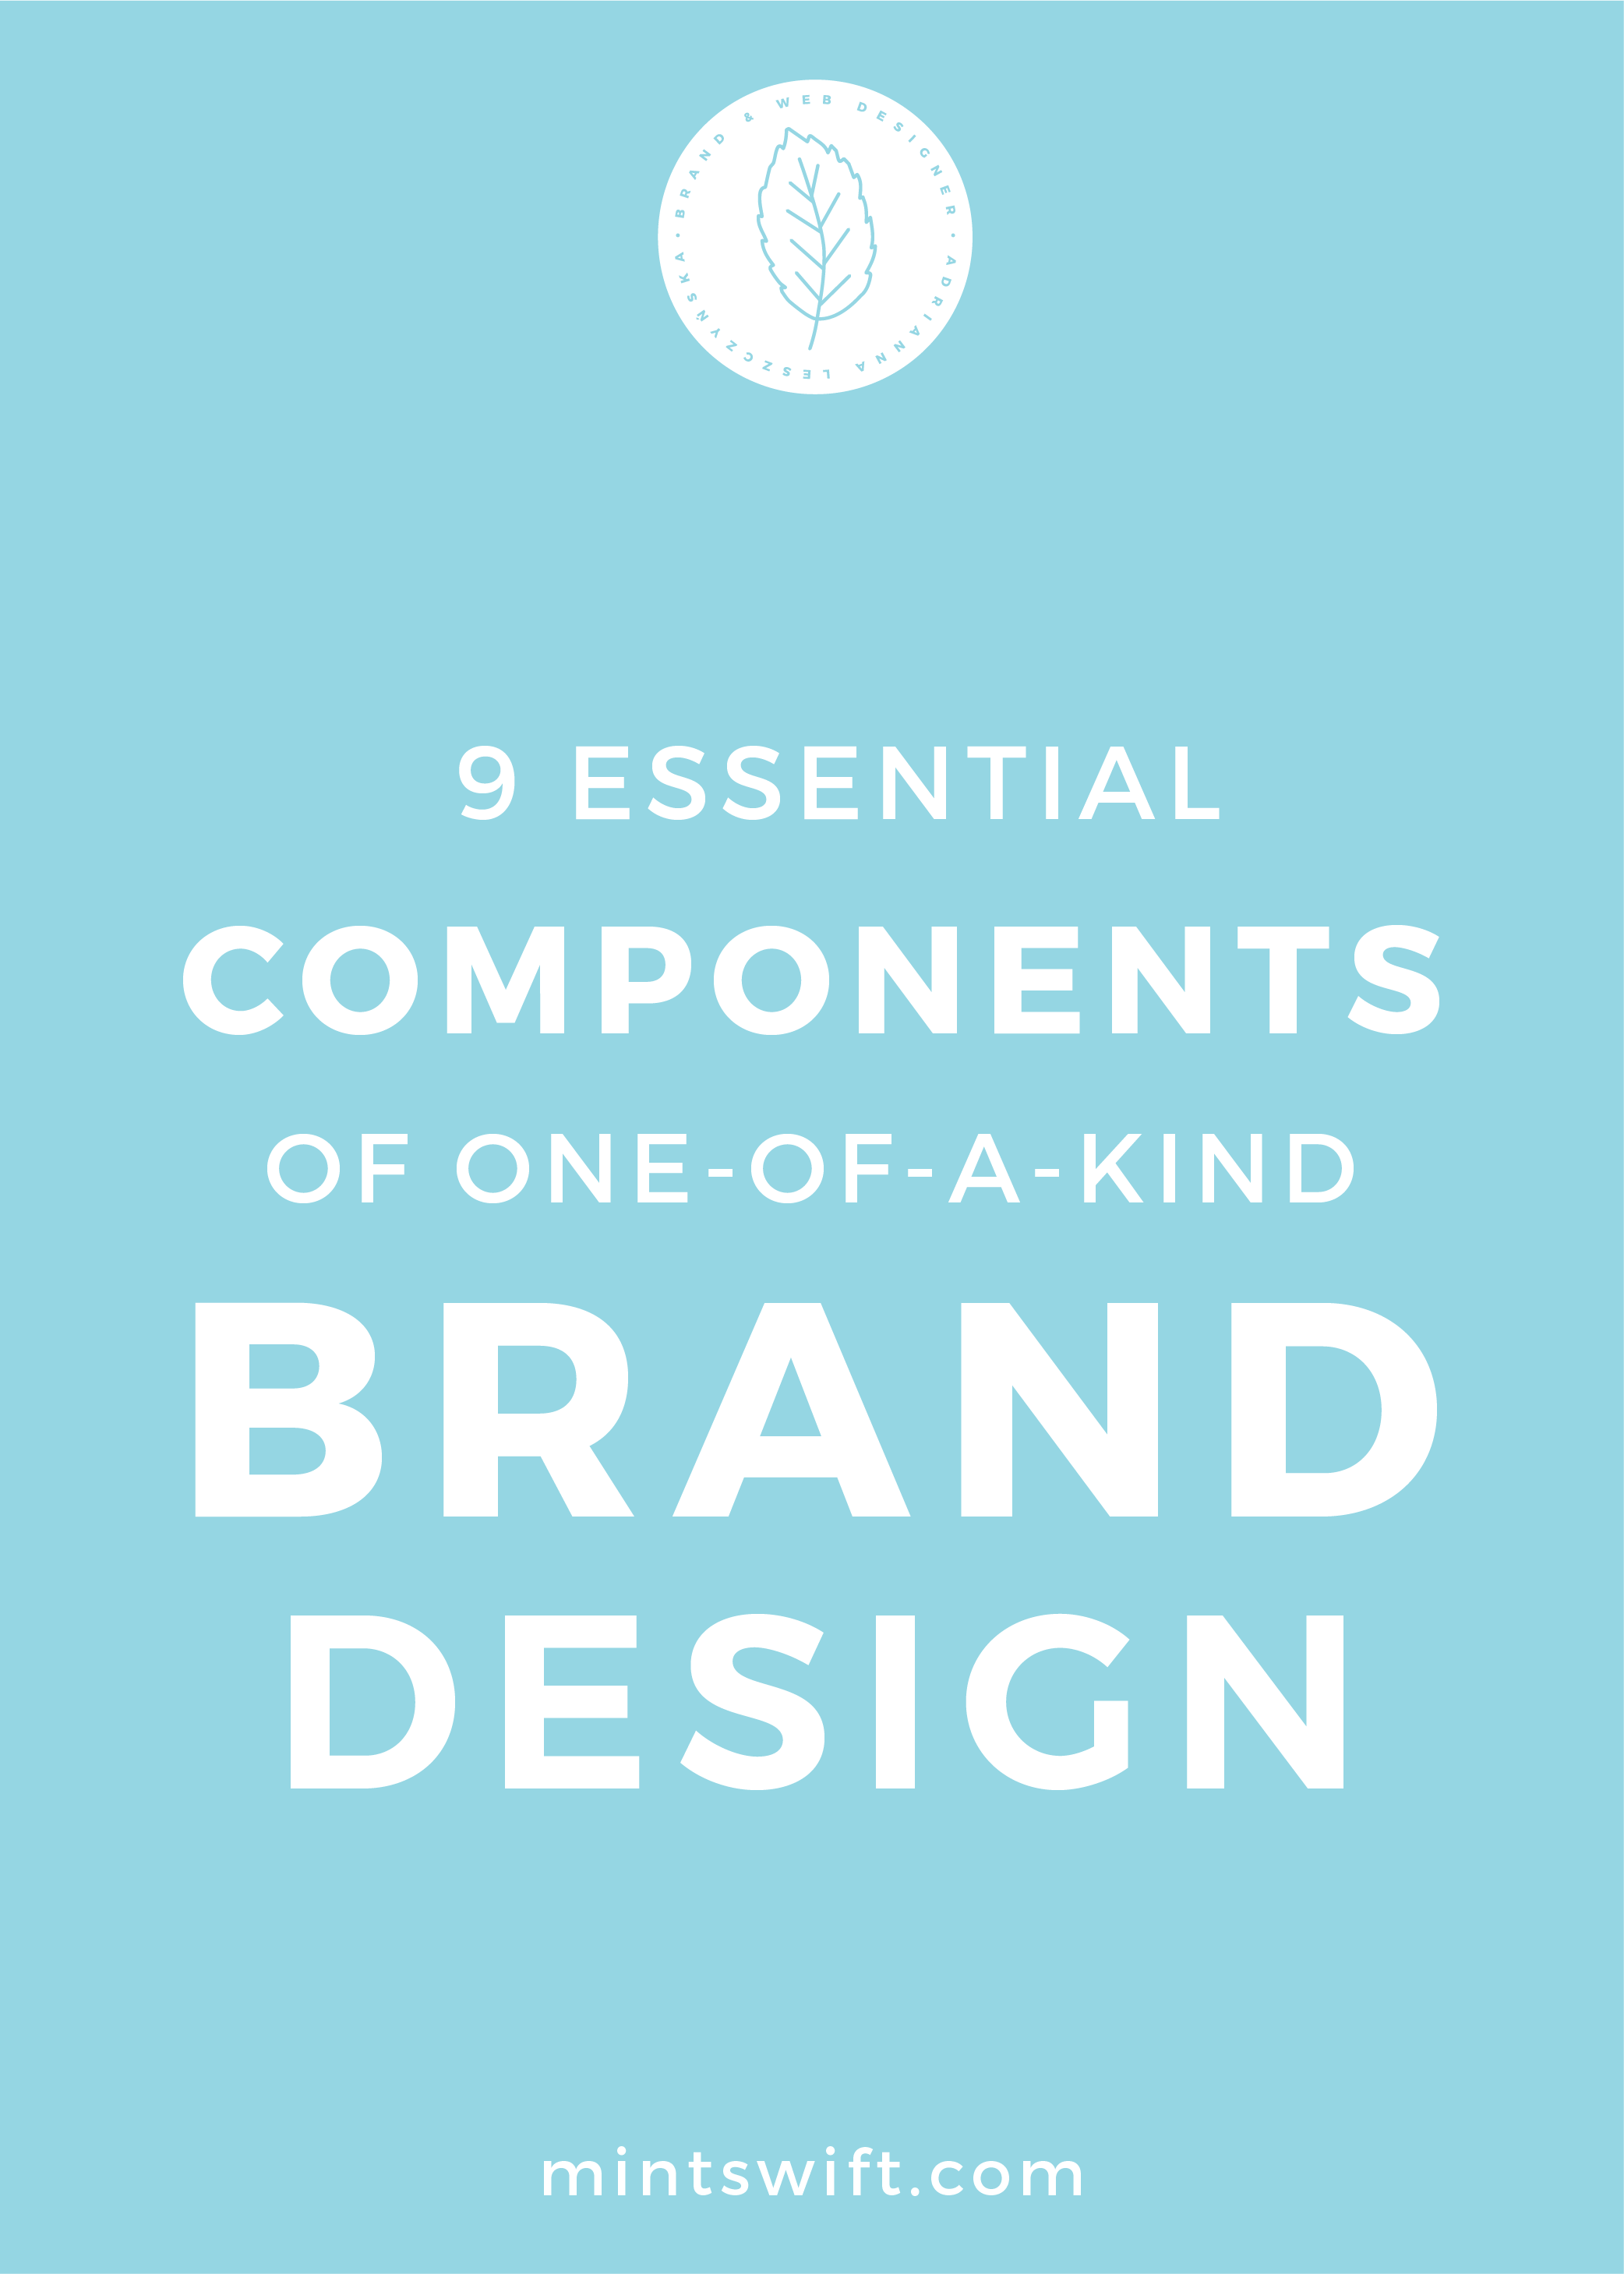 9 Essential Components of one-of-a-kind Brand Design - MintSwift